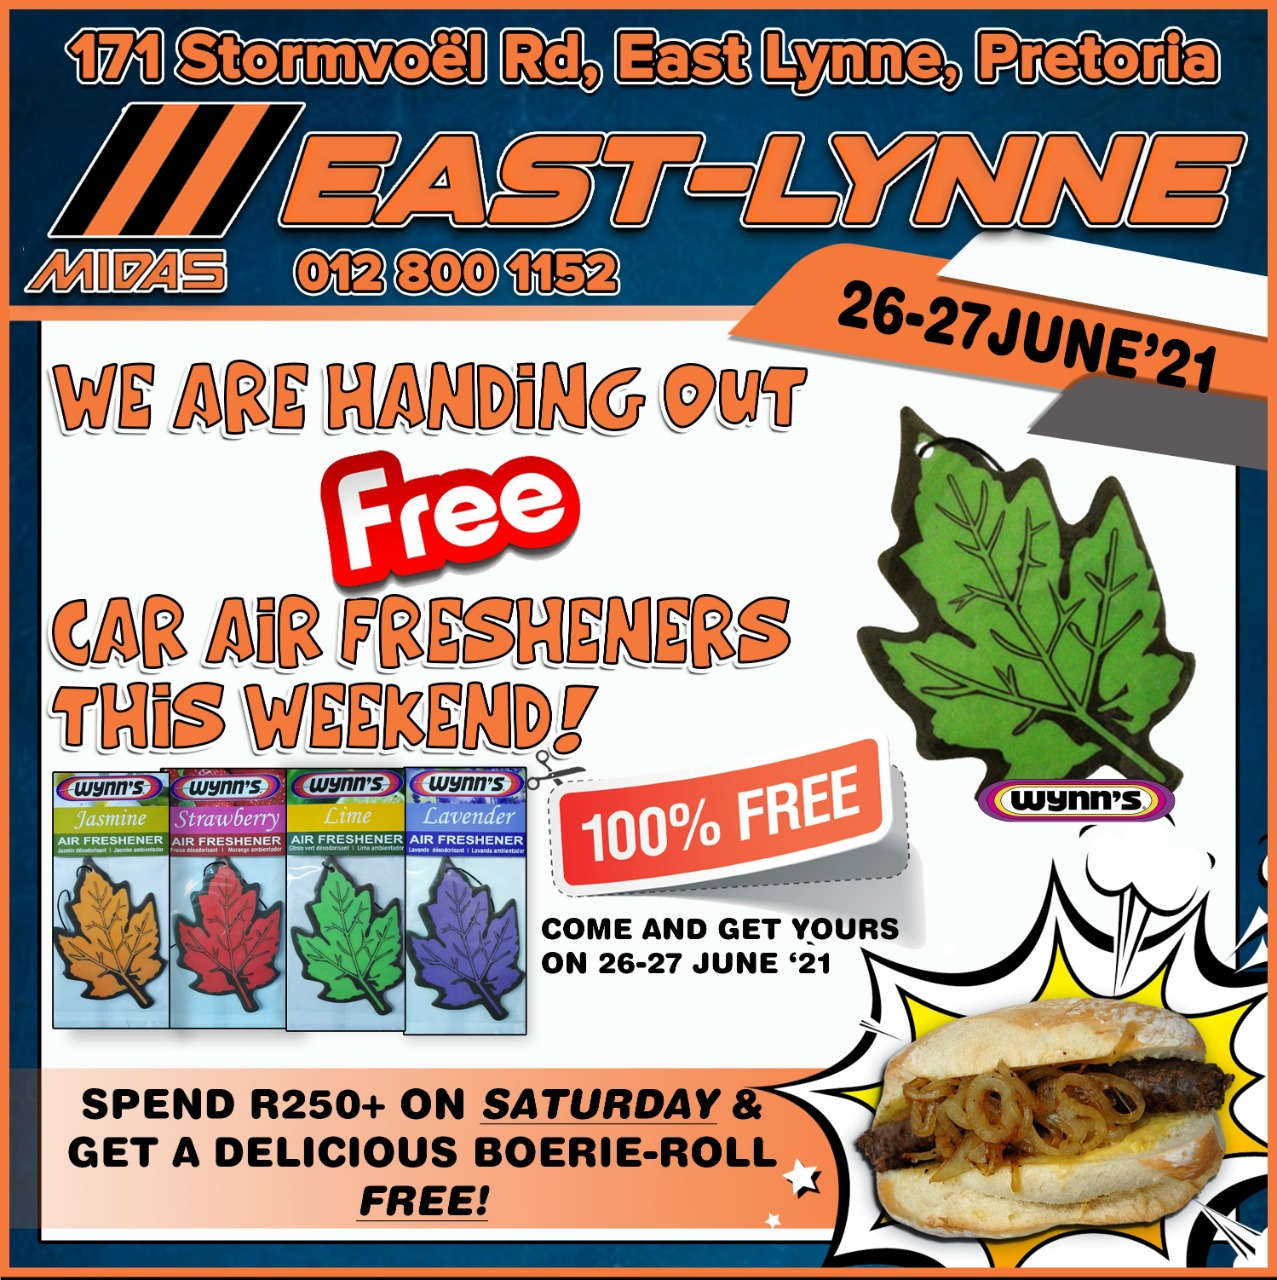 We are handing out FREE car air fresheners on 26 & 27 June!